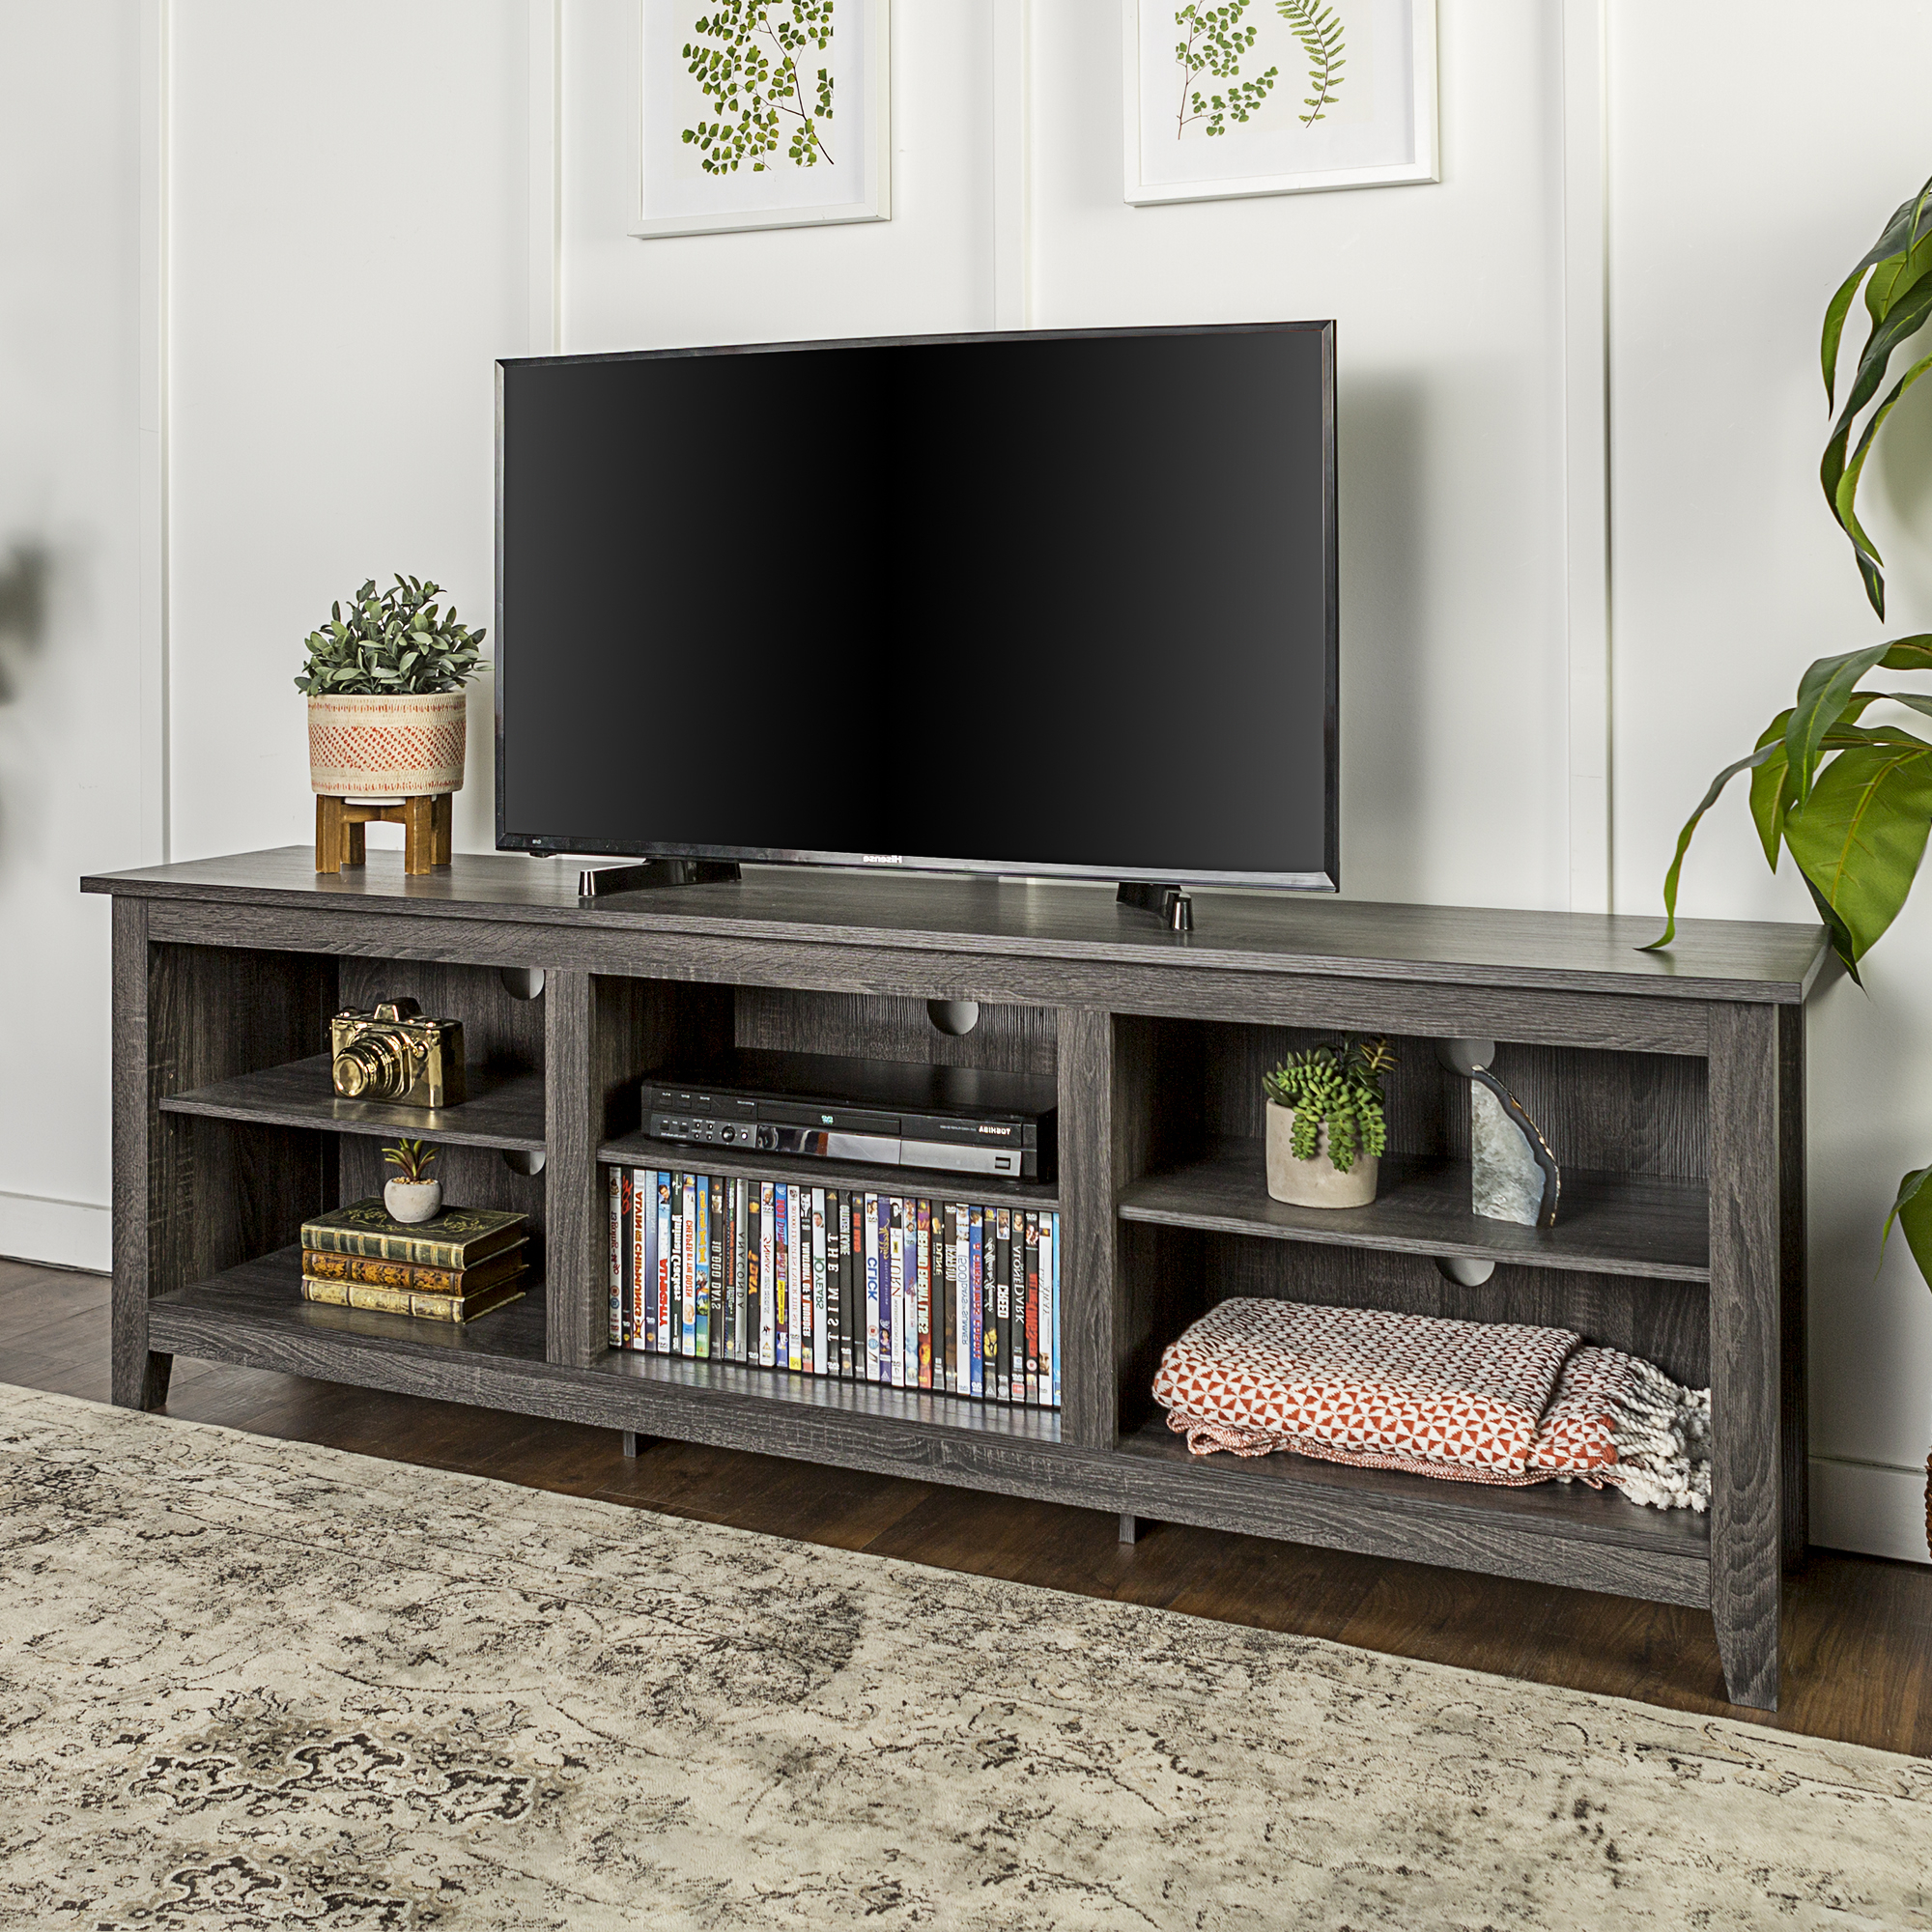 """Preferred 70"""" Wood Media Tv Stand Storage Console – Charcoal For Tv Stands With Table Storage Cabinet In Rustic Gray Wash (View 1 of 10)"""